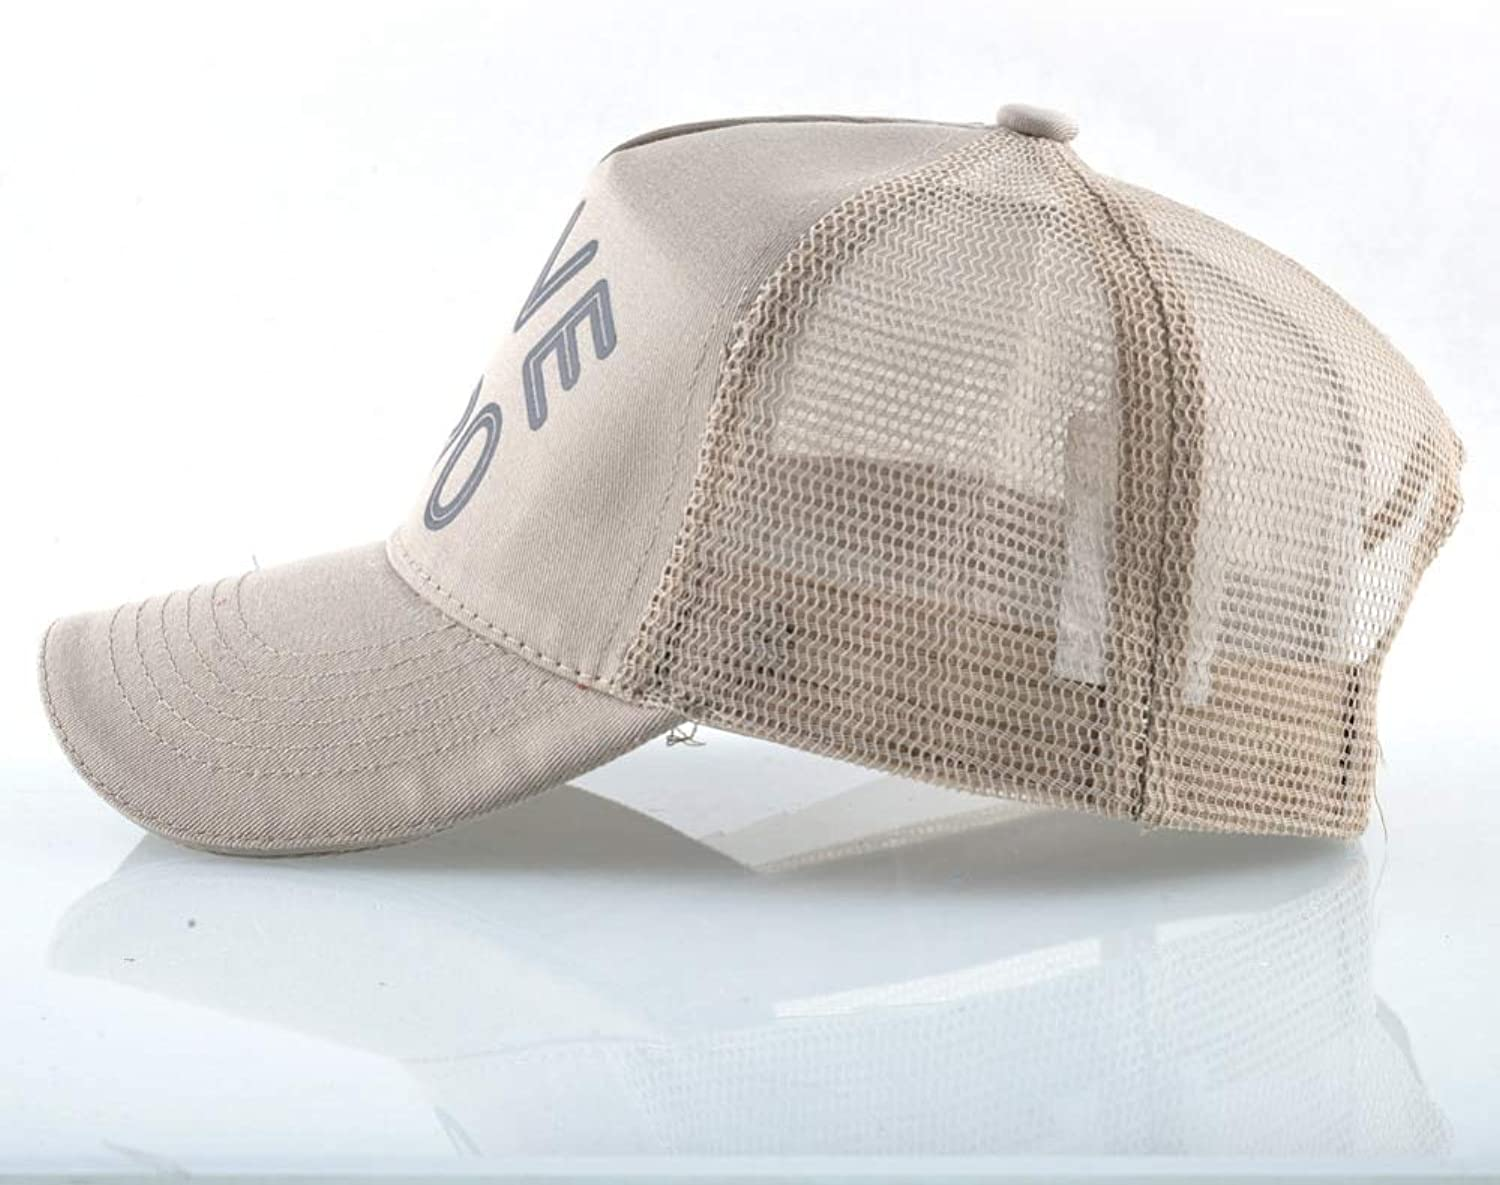 AAMOUSE Solid Baseball Cap with Letters Mesh Hats for Men Women Outdoor Breathable Sports Visor Cap Trucker Bone